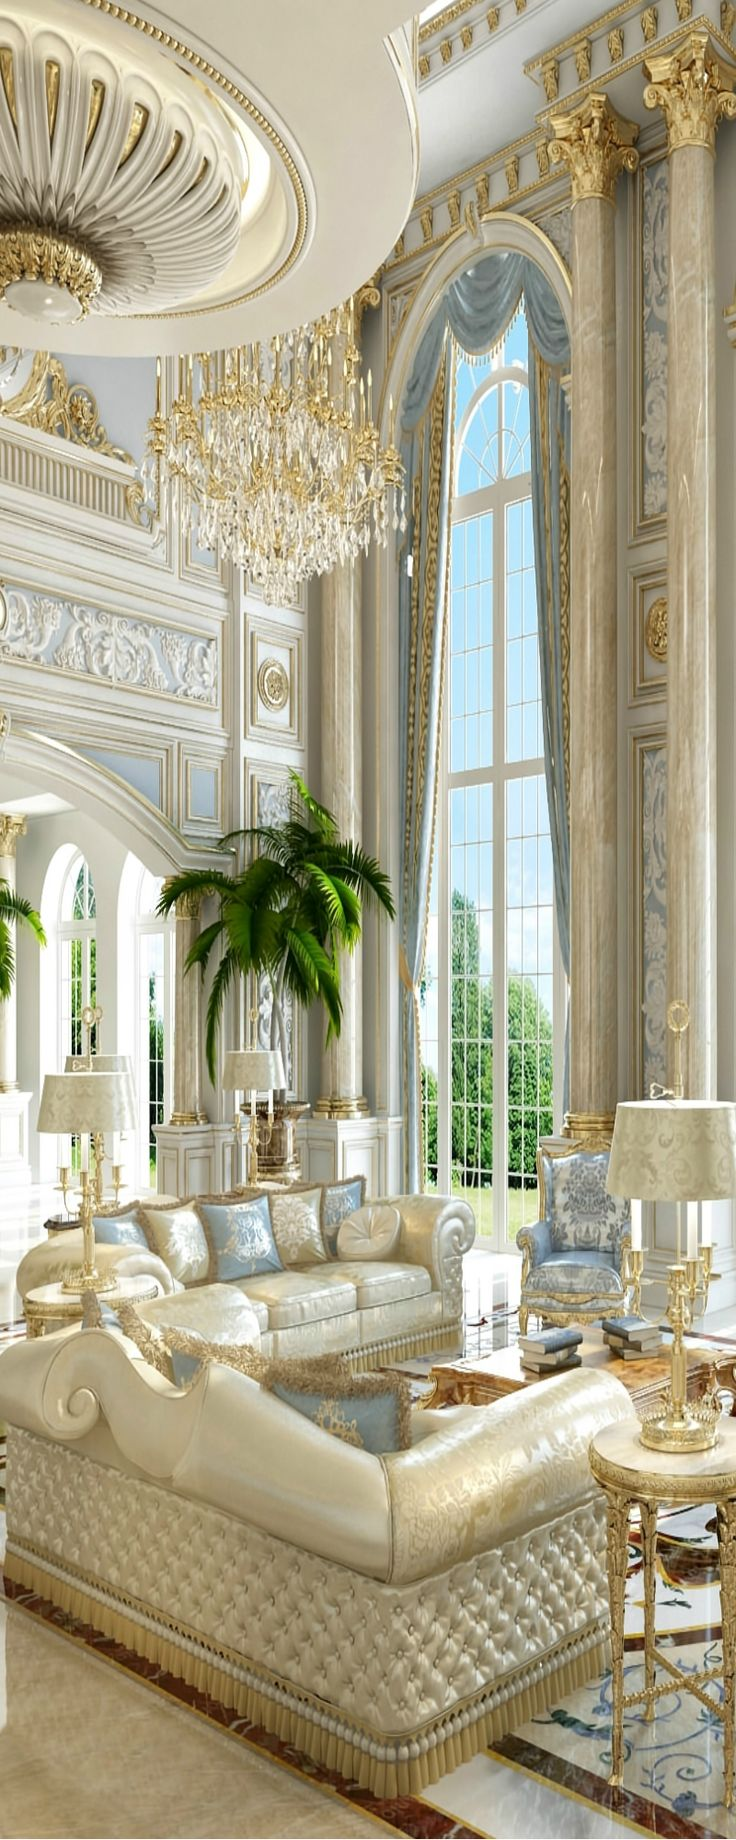 Rosamaria g frangini architecture luxury interiors lux interiors antonovich luxury design